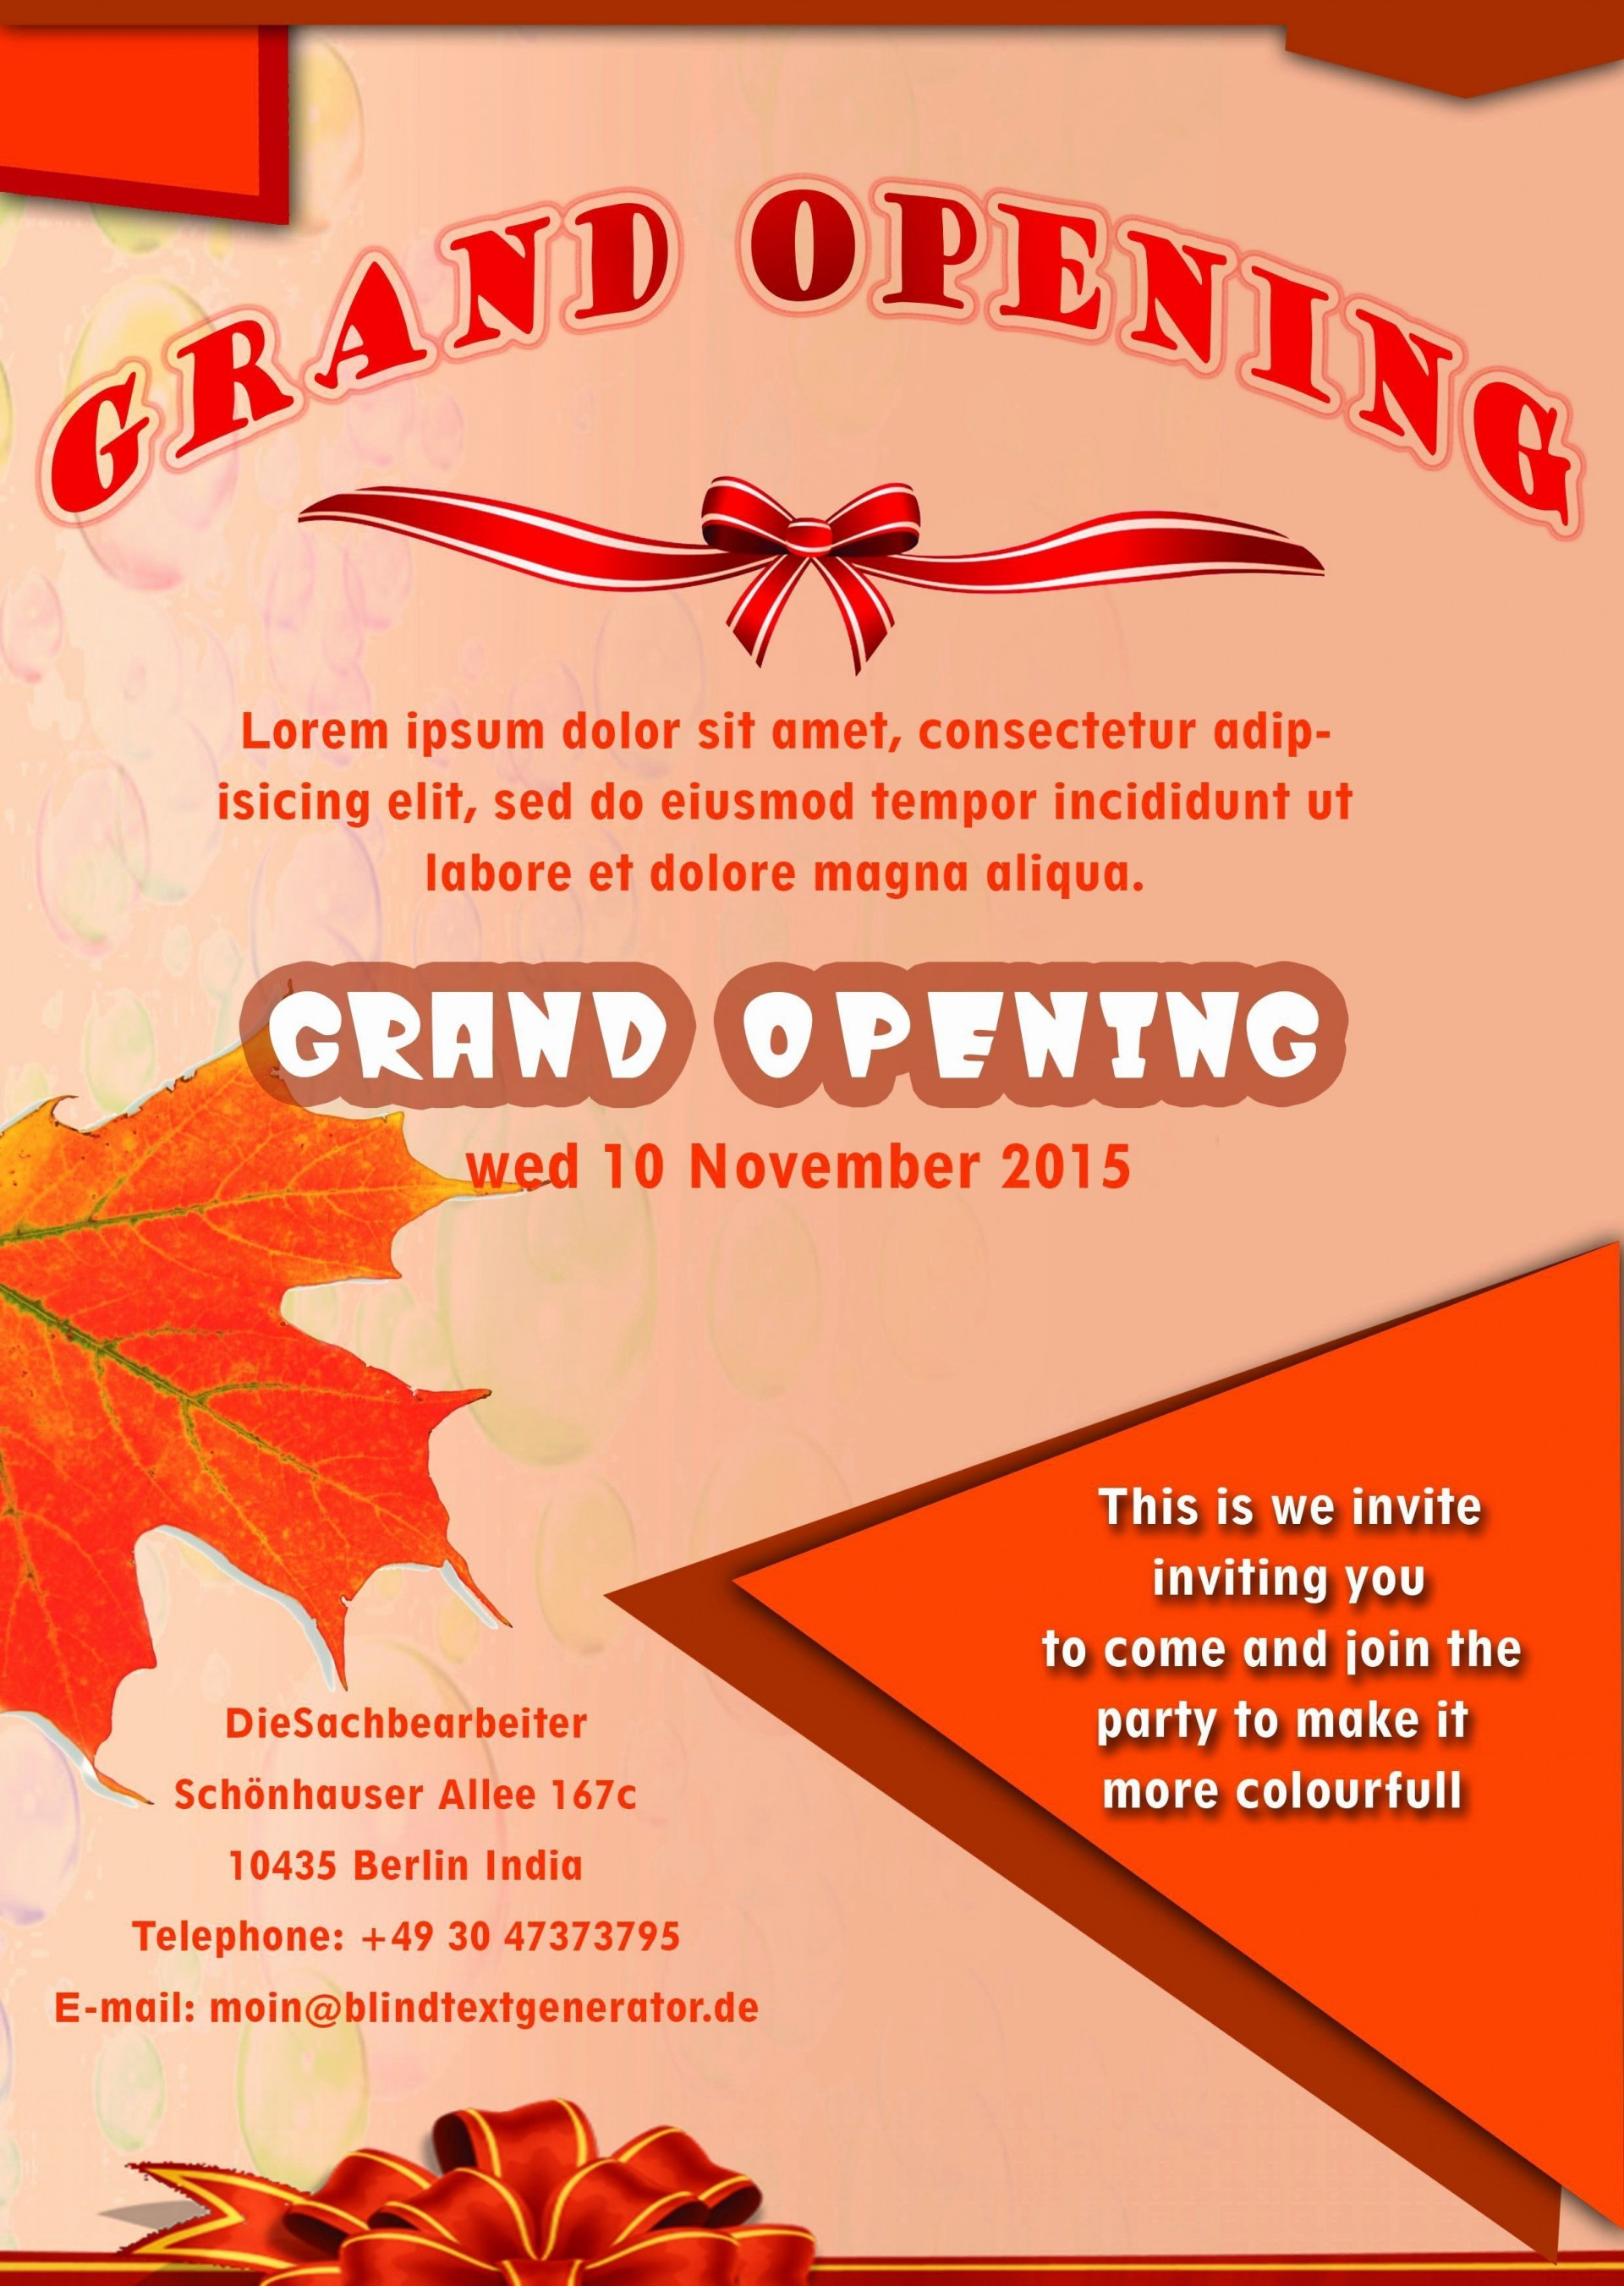 002 Surprising Grand Opening Flyer Template Free Idea  Restaurant1920